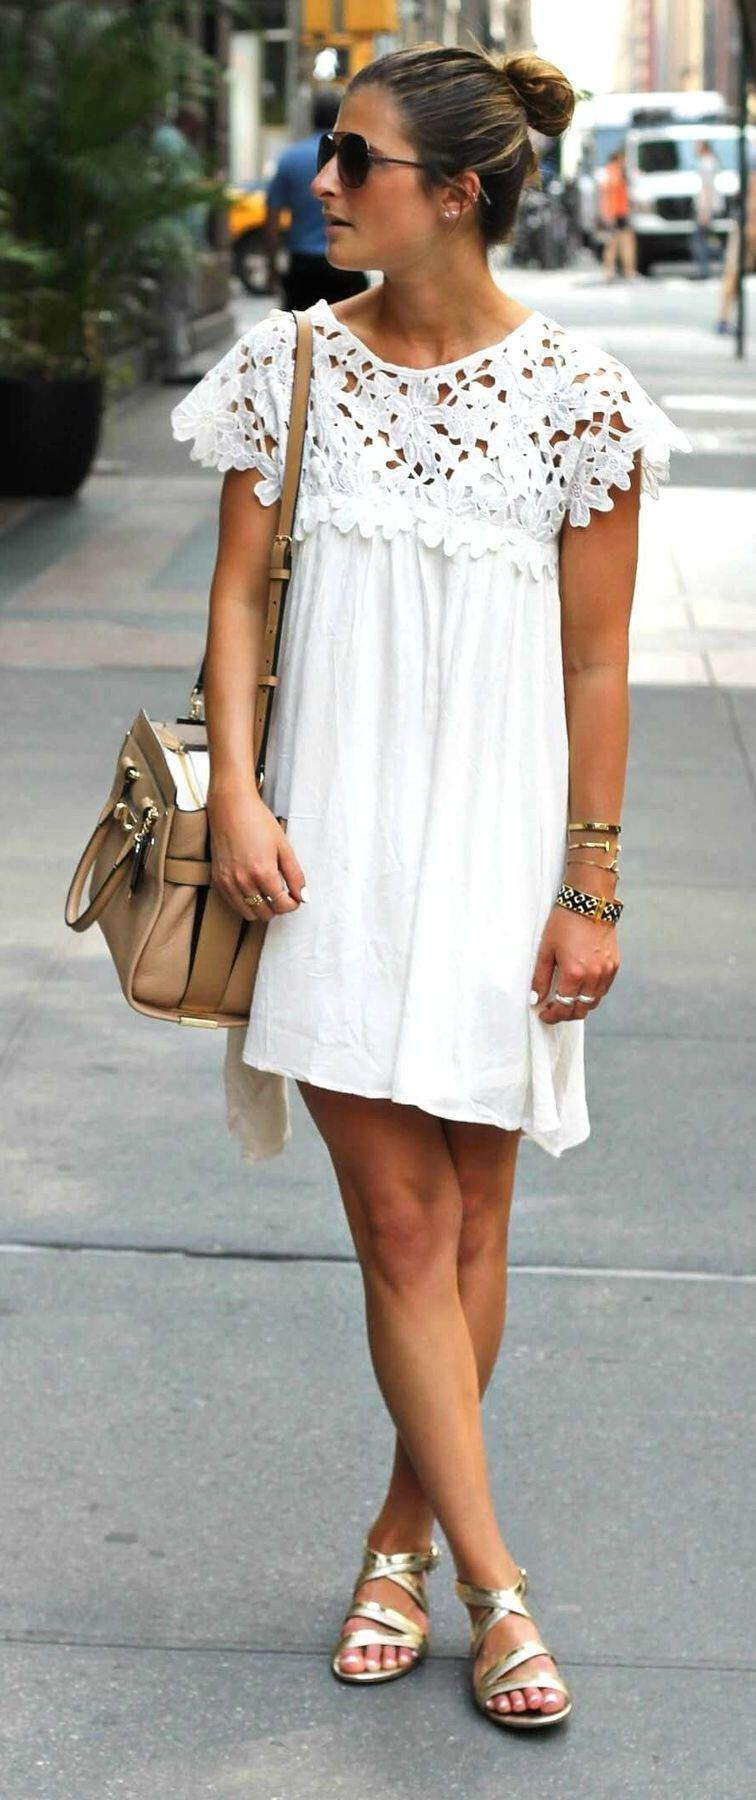 11 cute summer outfit with gold sandals 5 - 11 cute summer outfit with gold sandals